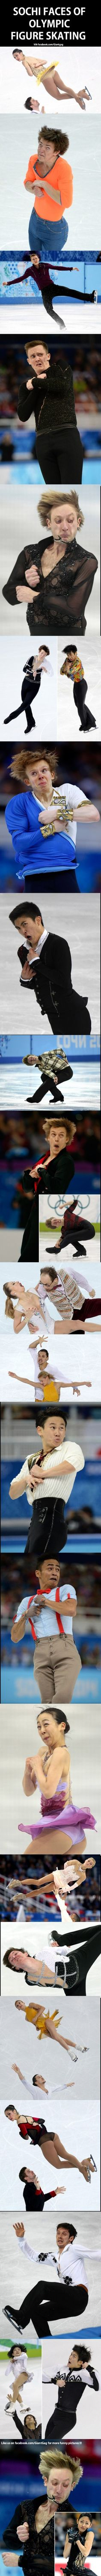 figure skating, the face, olymp figur, funny pictures, funni